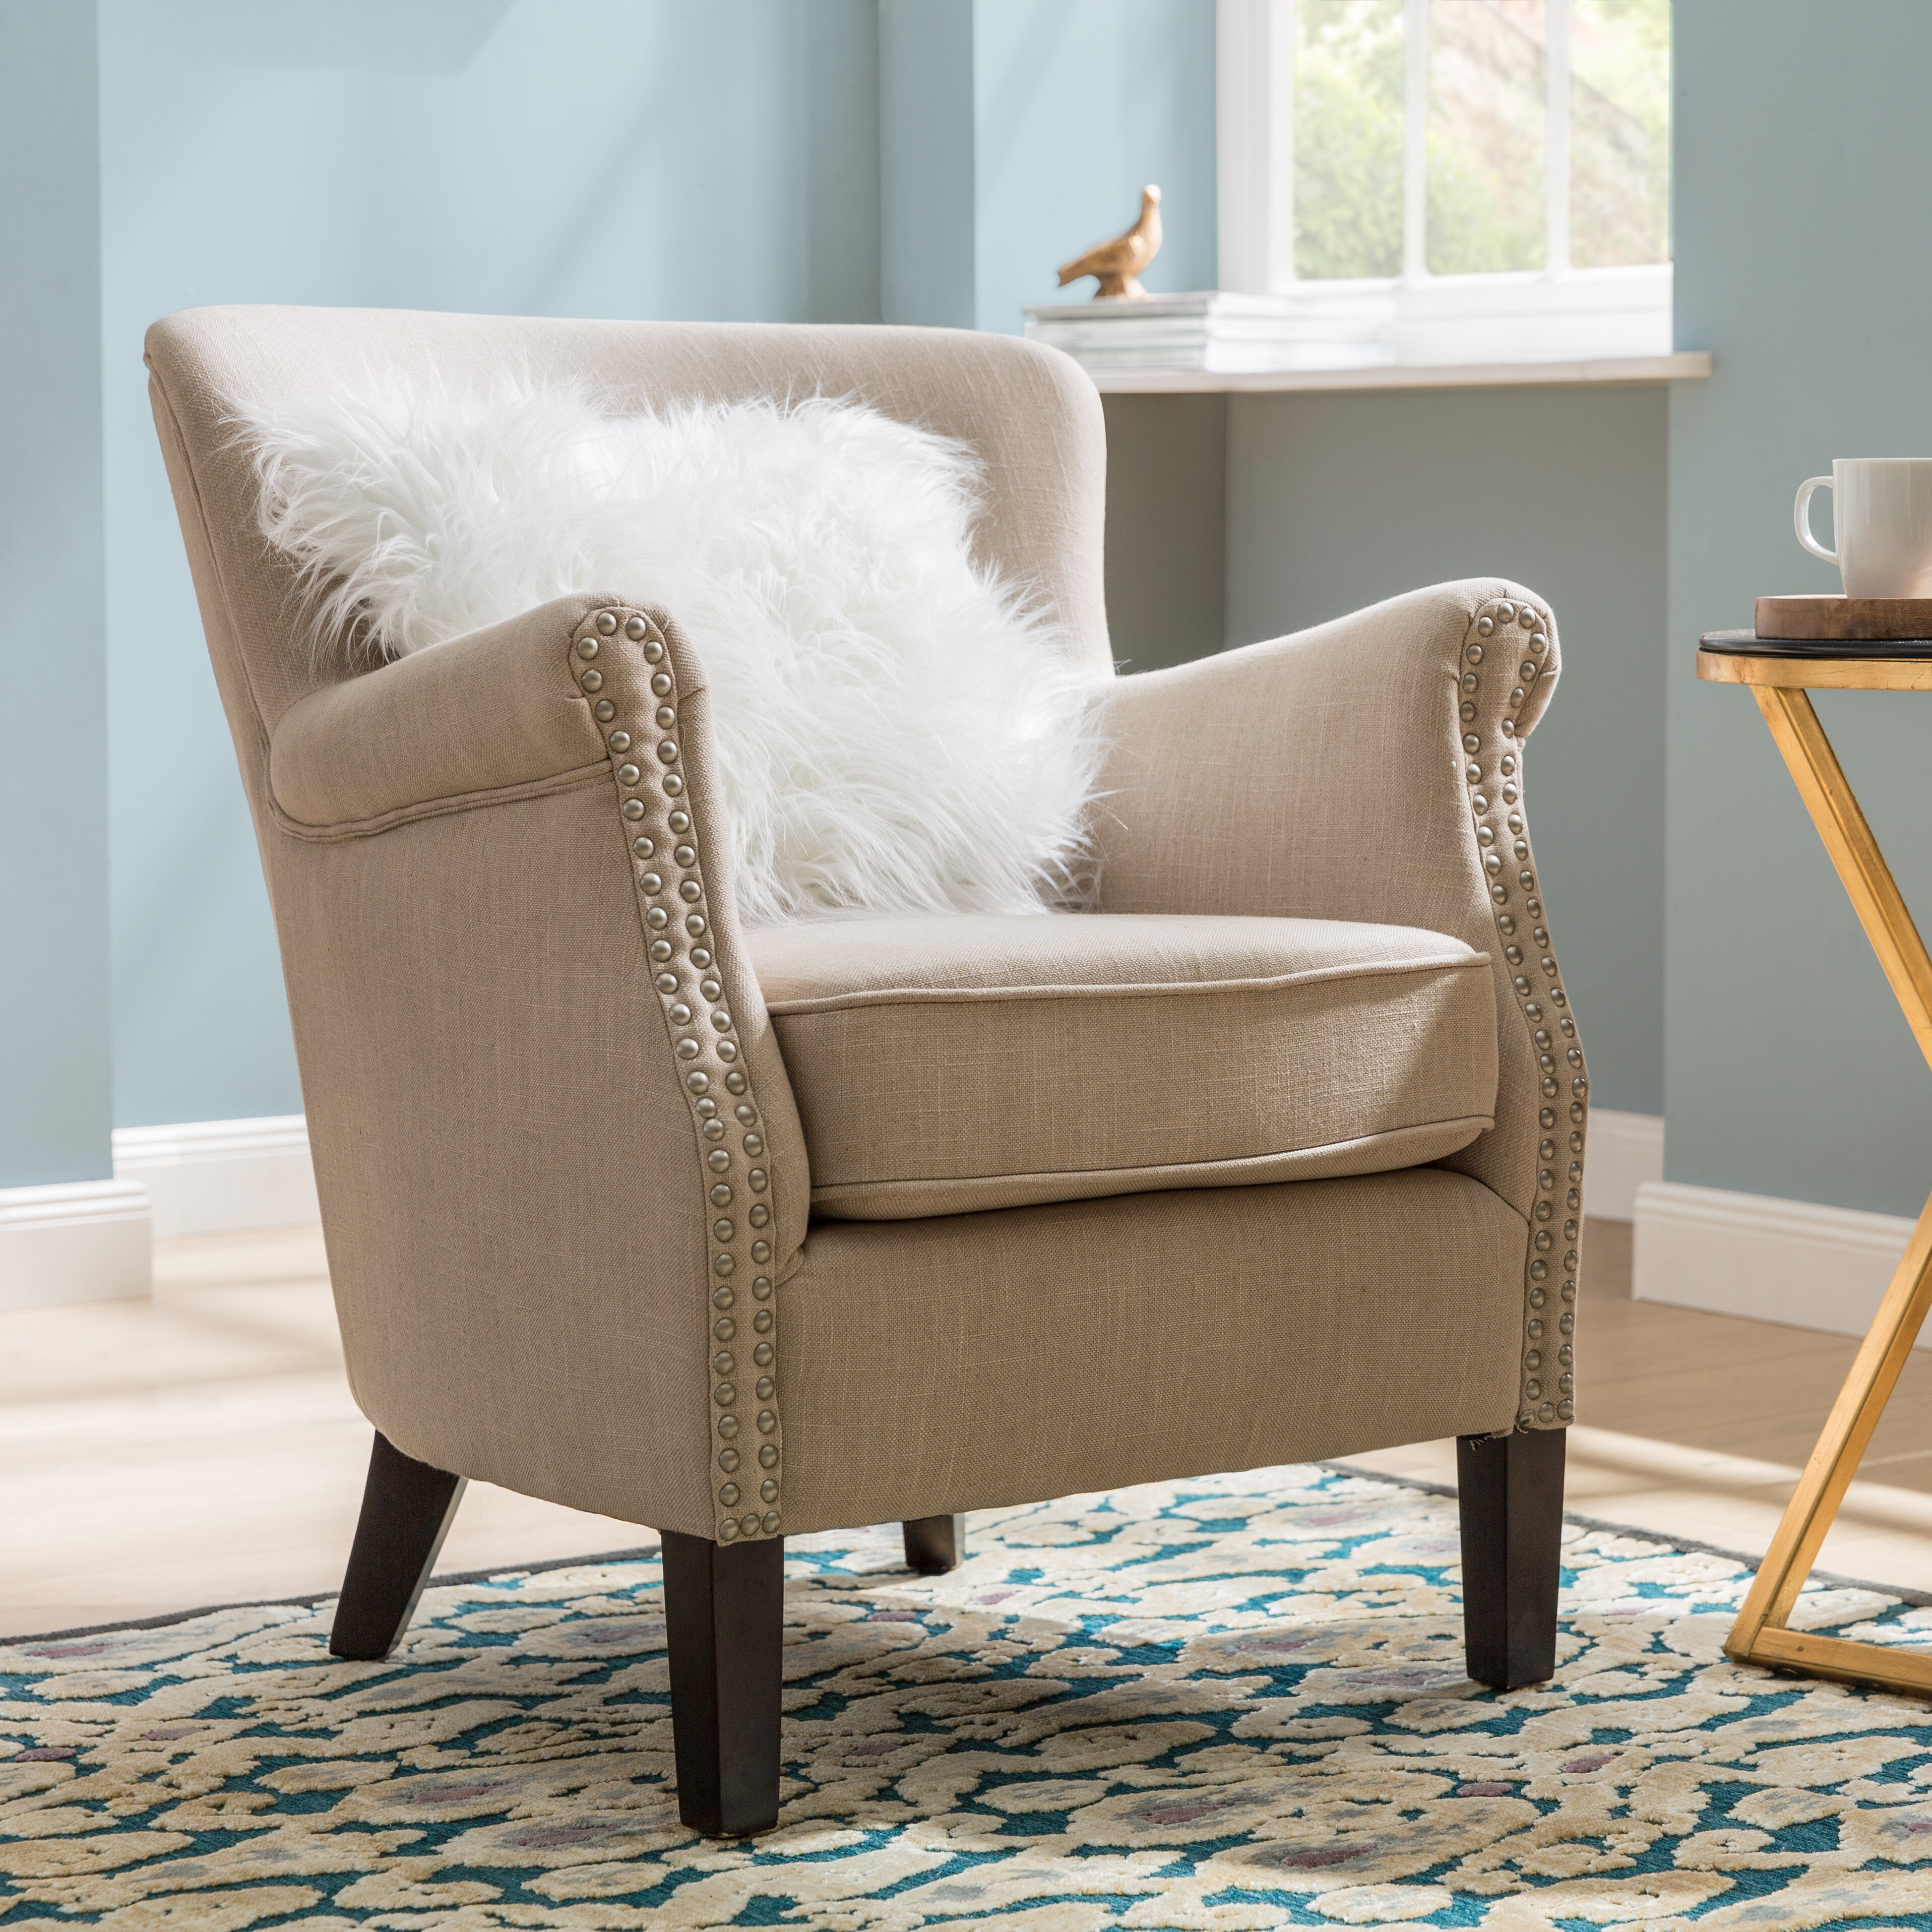 Fairmont Park Keynsham Armchair Reviews Wayfair Uk